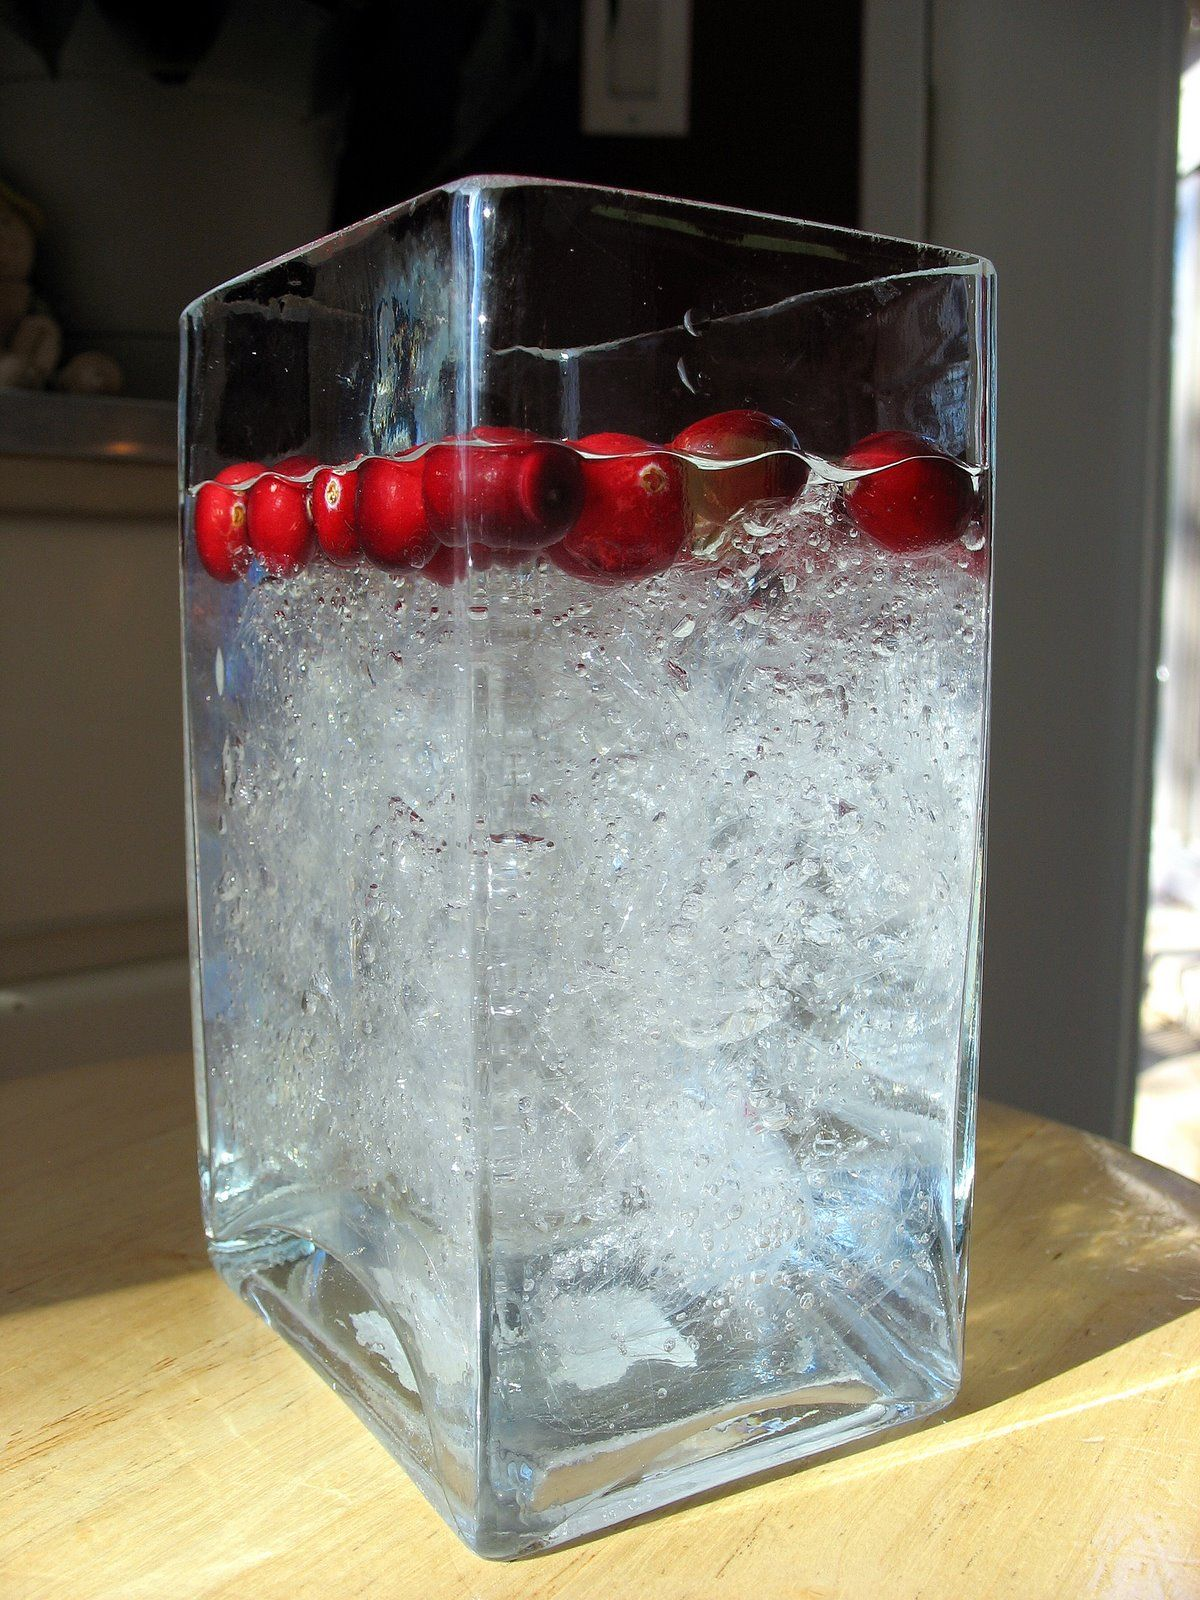 How to make christmas centerpieces with ice - Plastic Wrap And Water To Make A Cool And Easy Icy Look For Your Pretty Centerpieces